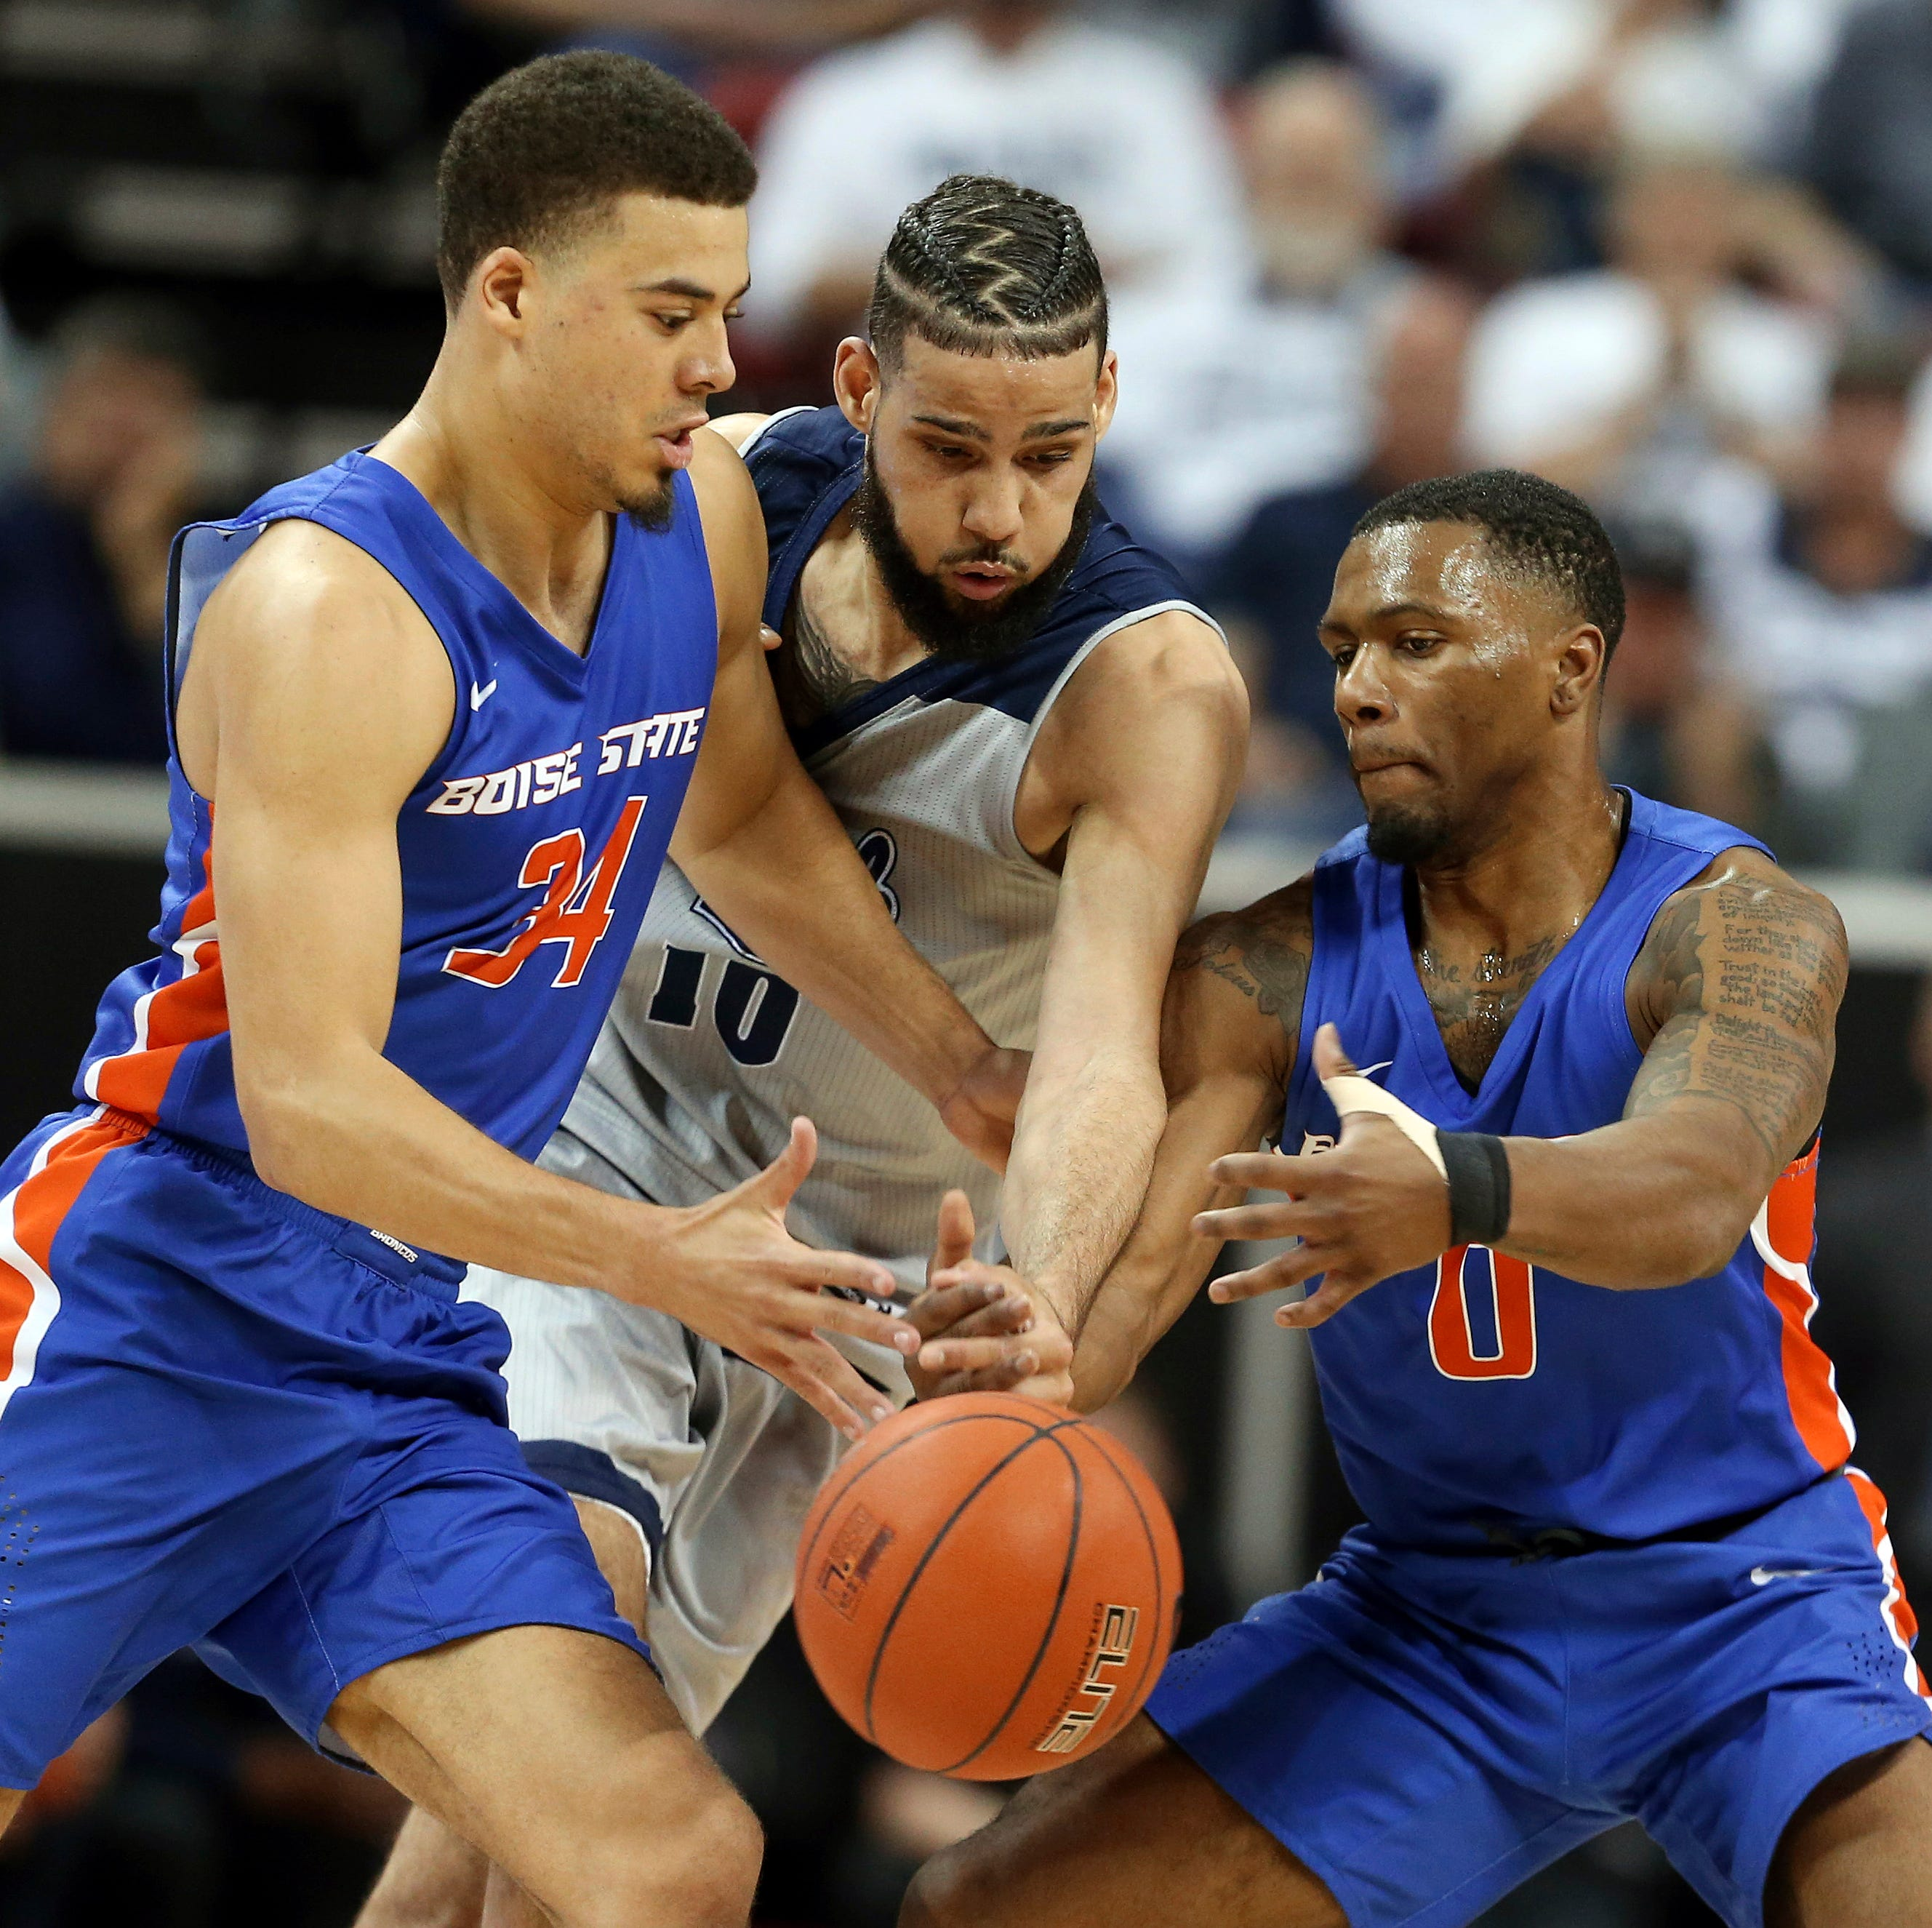 Mountain West basketball tournament: Nevada vs. Boise State video highlights, score